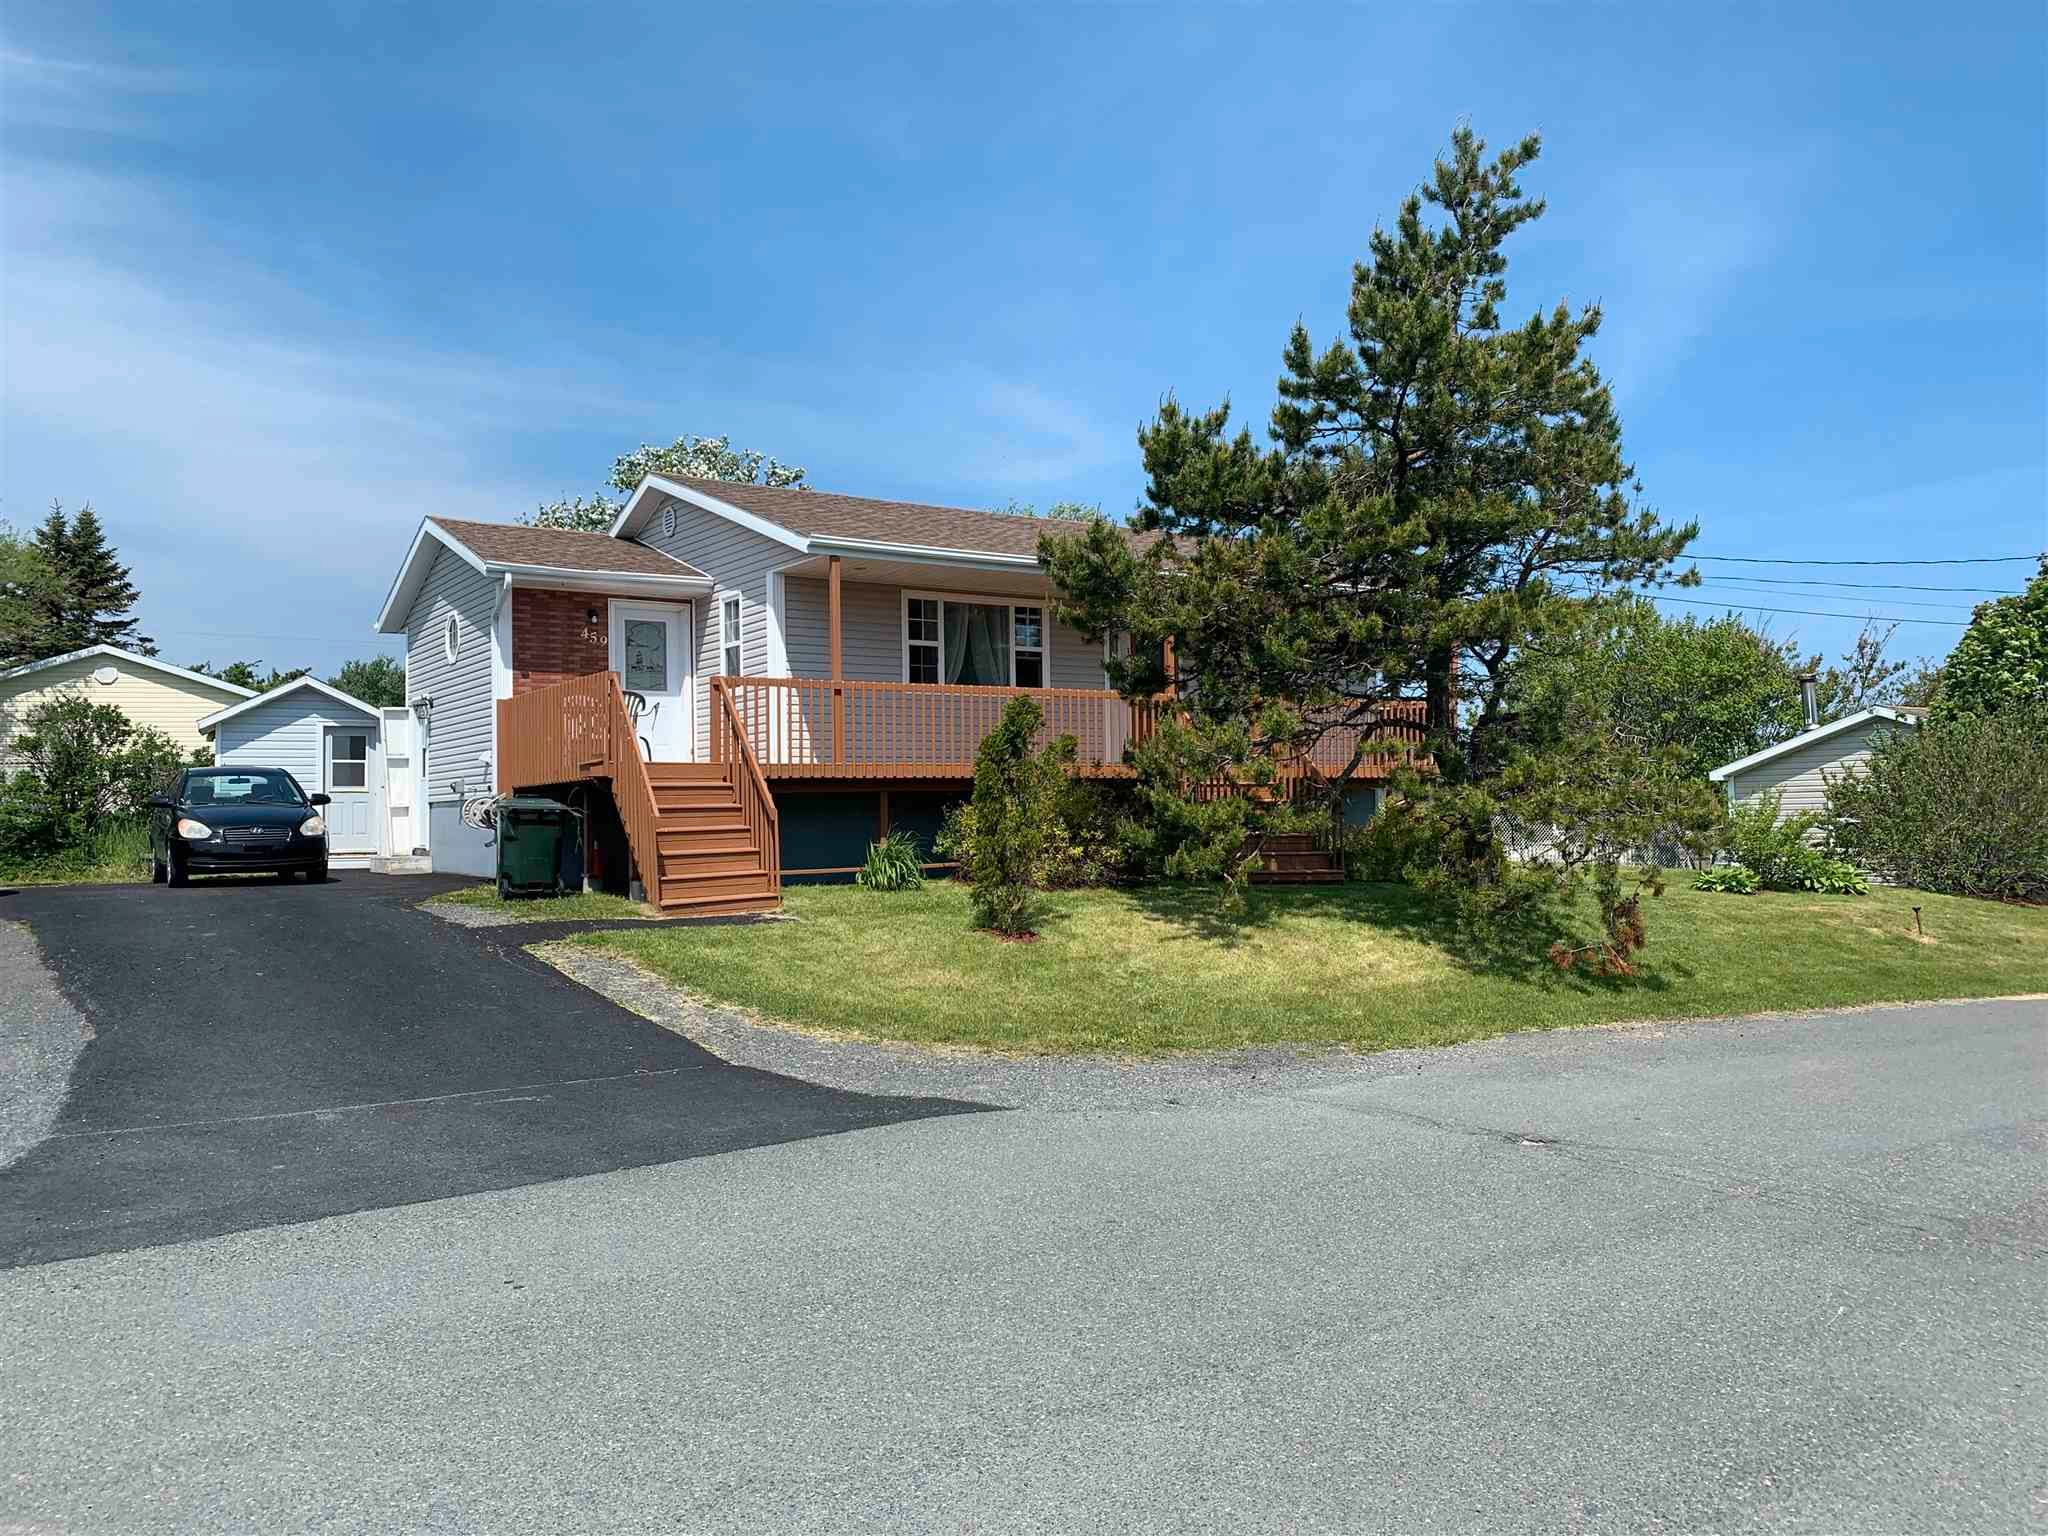 Main Photo: 459 St. Ann Street in New Waterford: 204-New Waterford Residential for sale (Cape Breton)  : MLS®# 202114422